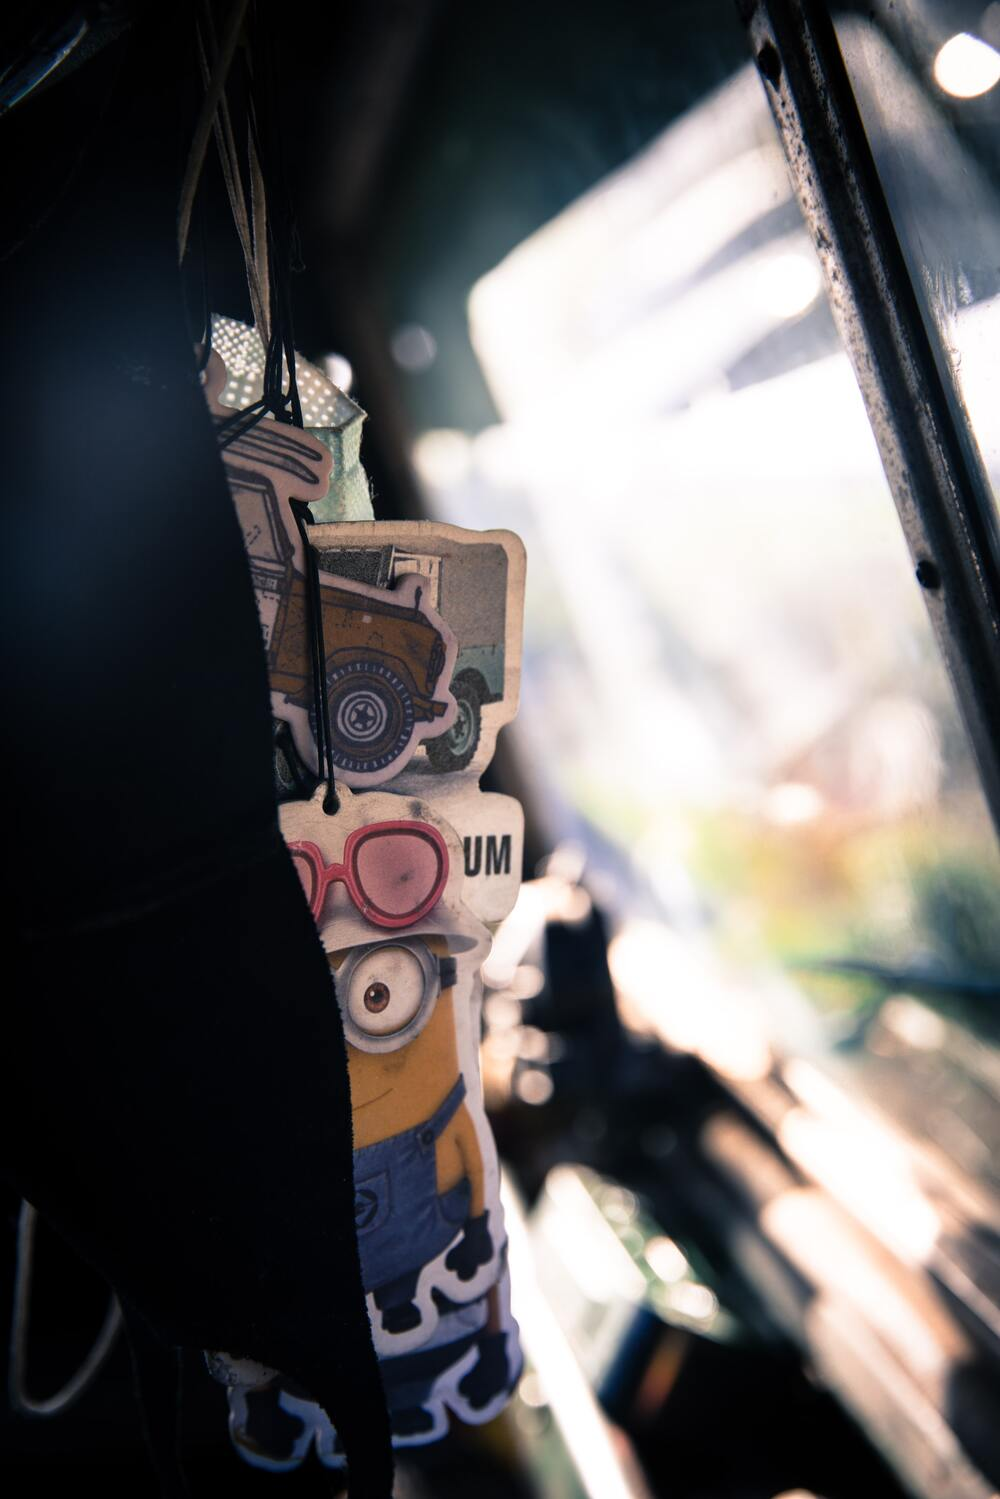 A collection of air fresheners hangs inside the vehicle's interior.